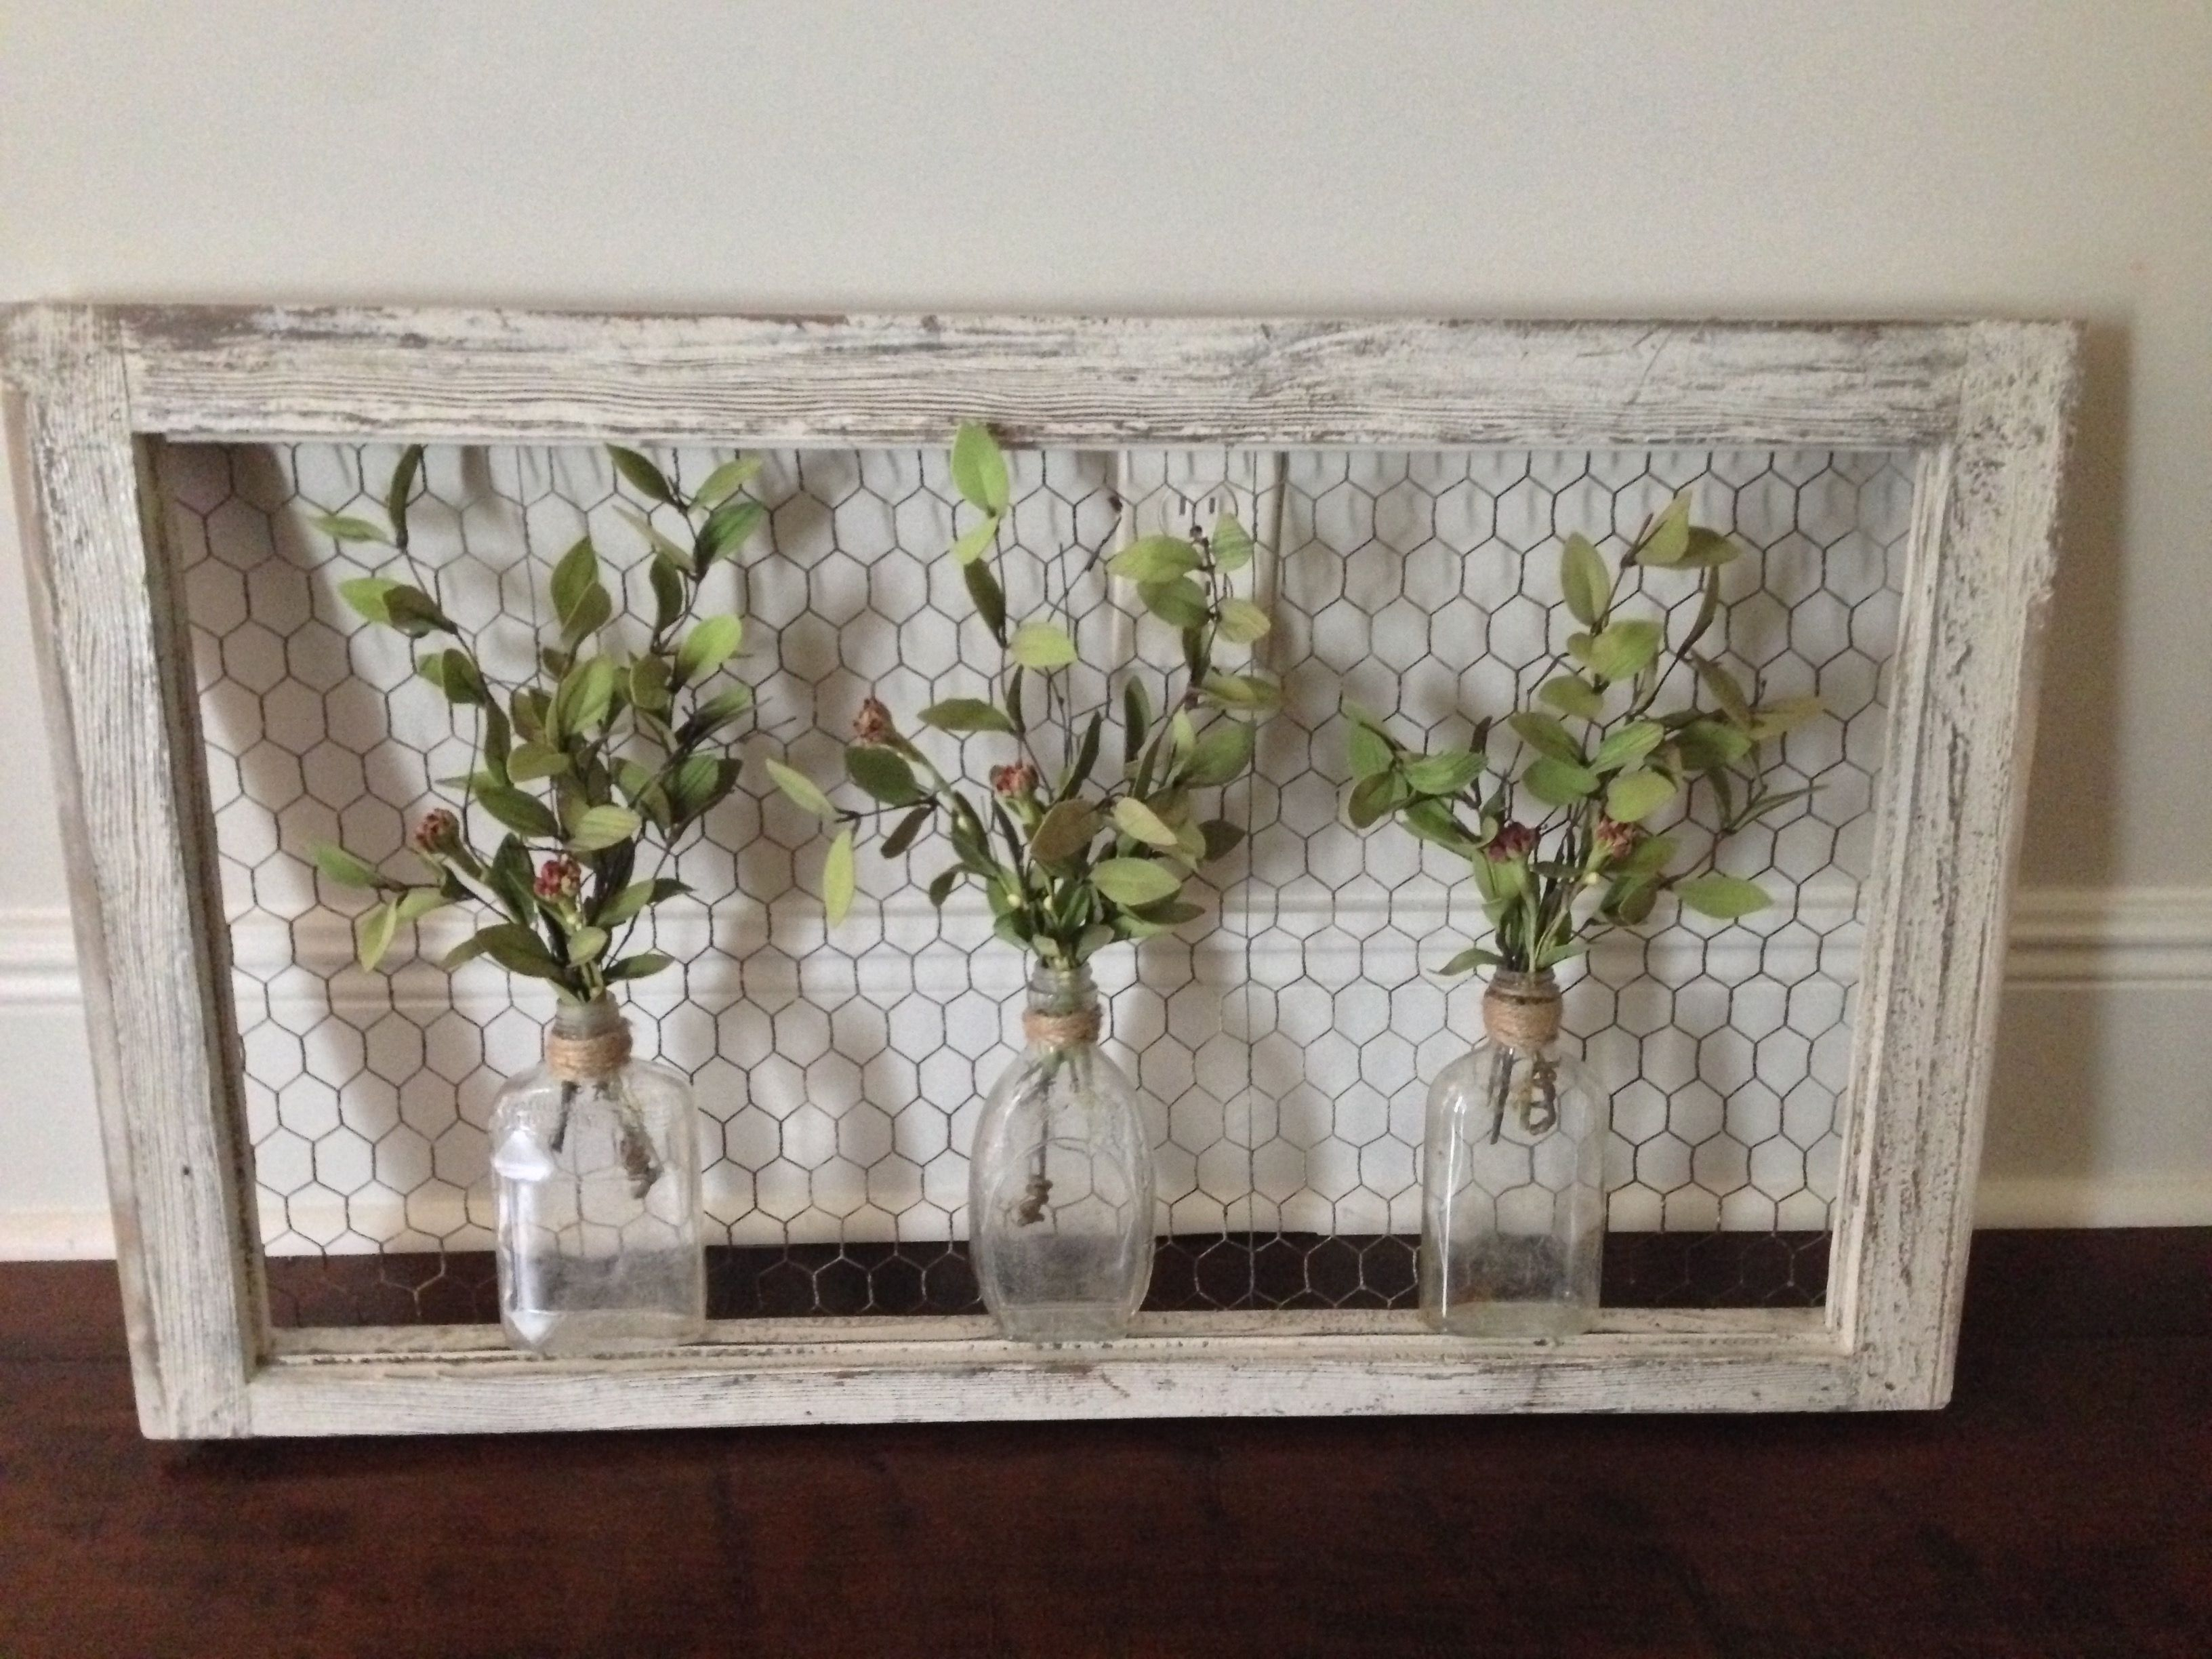 Wall Art: Old Window Frame, Chicken Wire, Old Bottles And Greenery With Regard To Best And Newest Window Frame Wall Art (View 13 of 15)